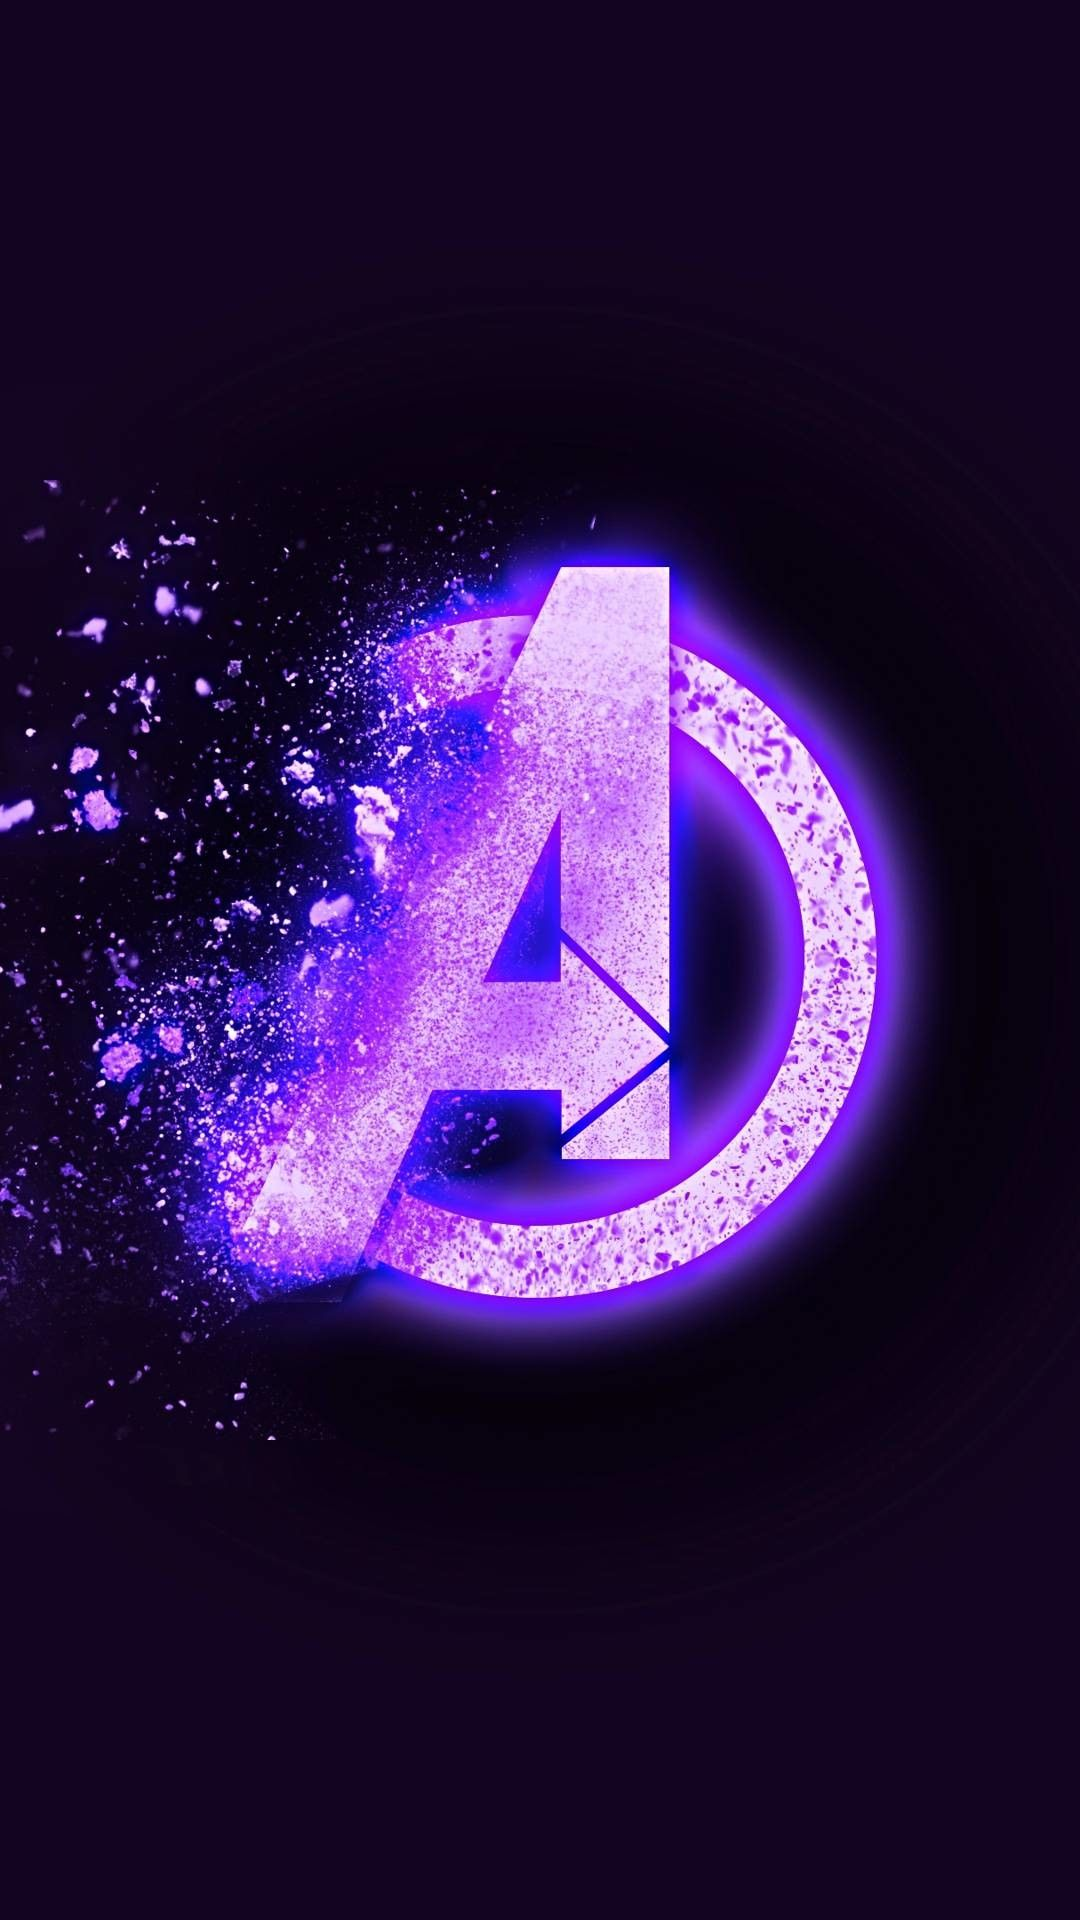 78 Avengers Logo Wallpapers On Wallpaperplay Marvel Wallpaper Marvel Wallpaper Hd Avengers Wallpaper